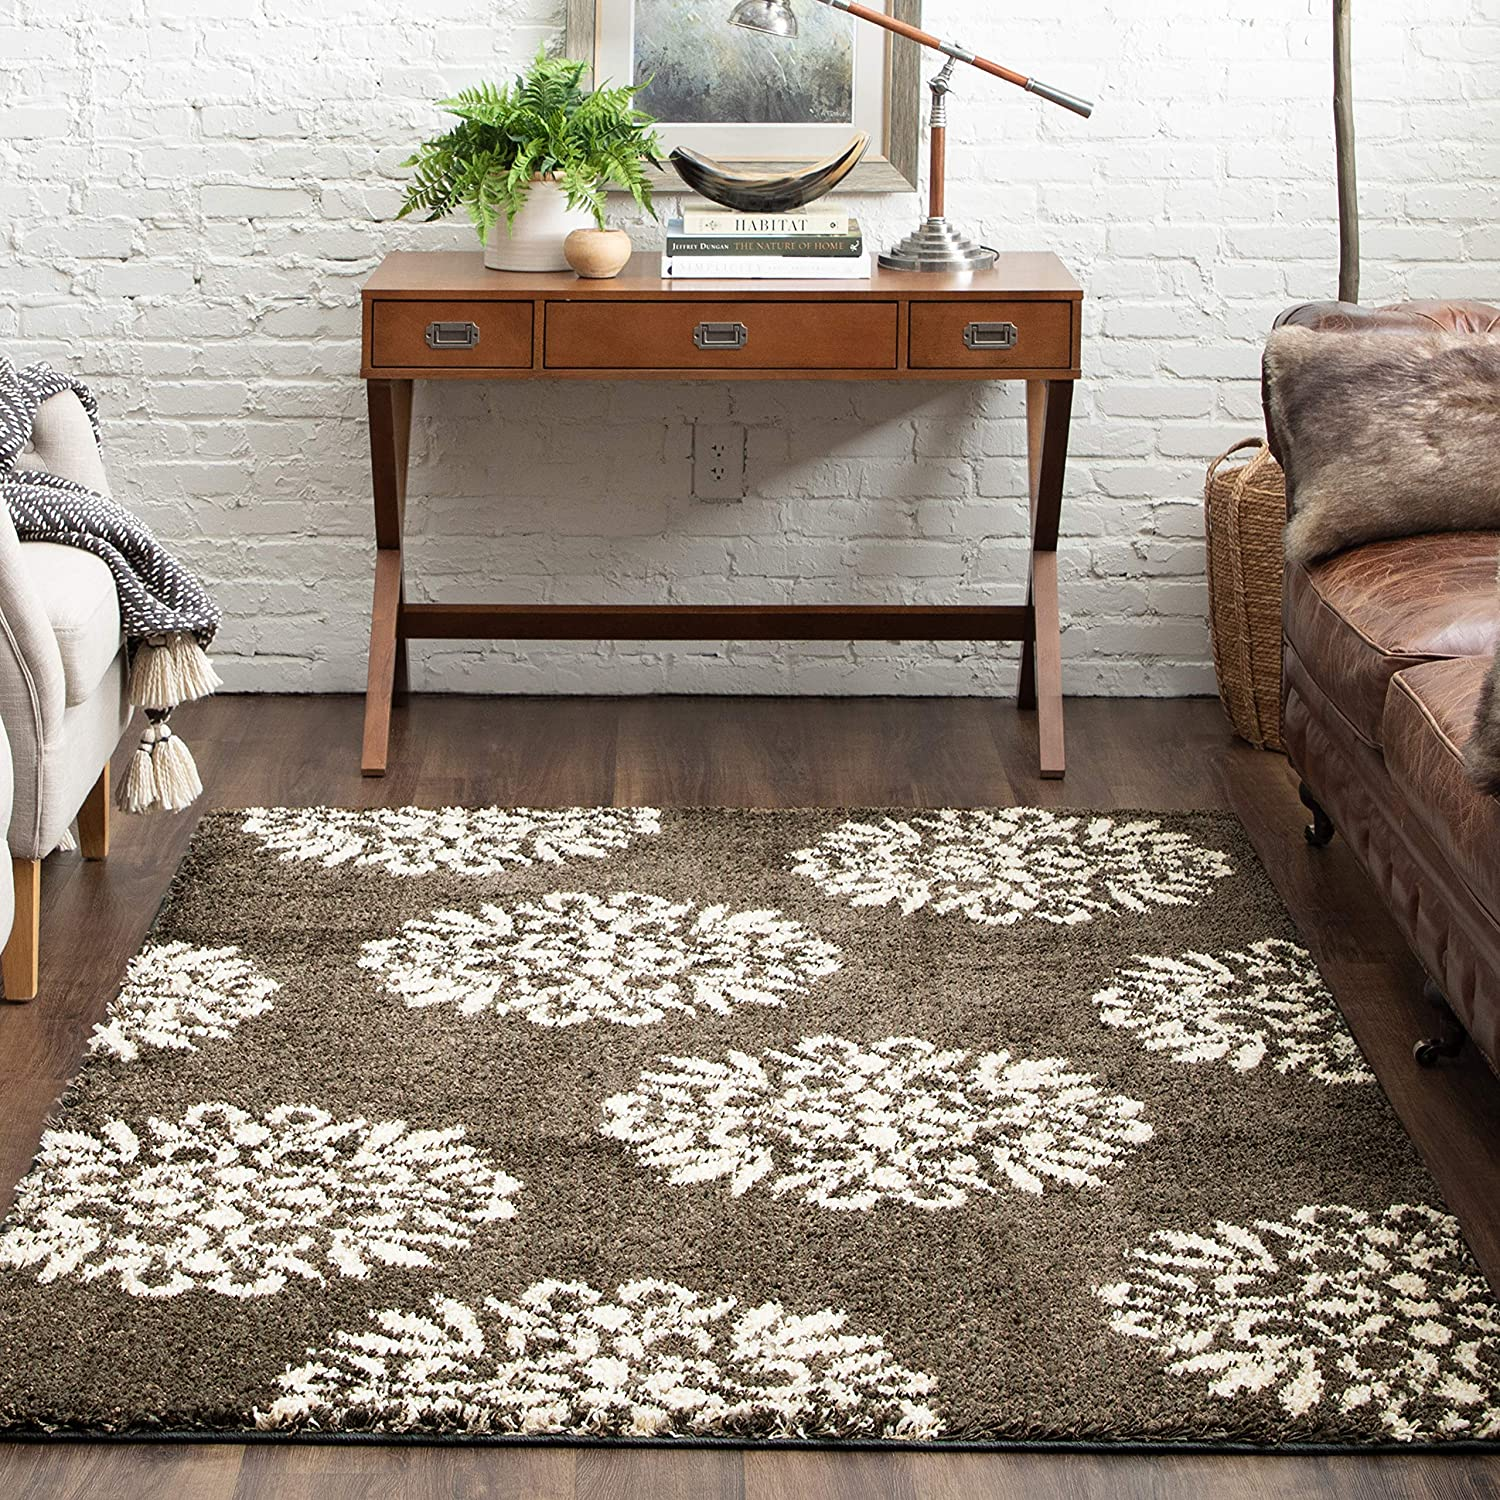 Mohawk Home Exploded Medallions Area Rug, 3'4x5'6, Ash Grey